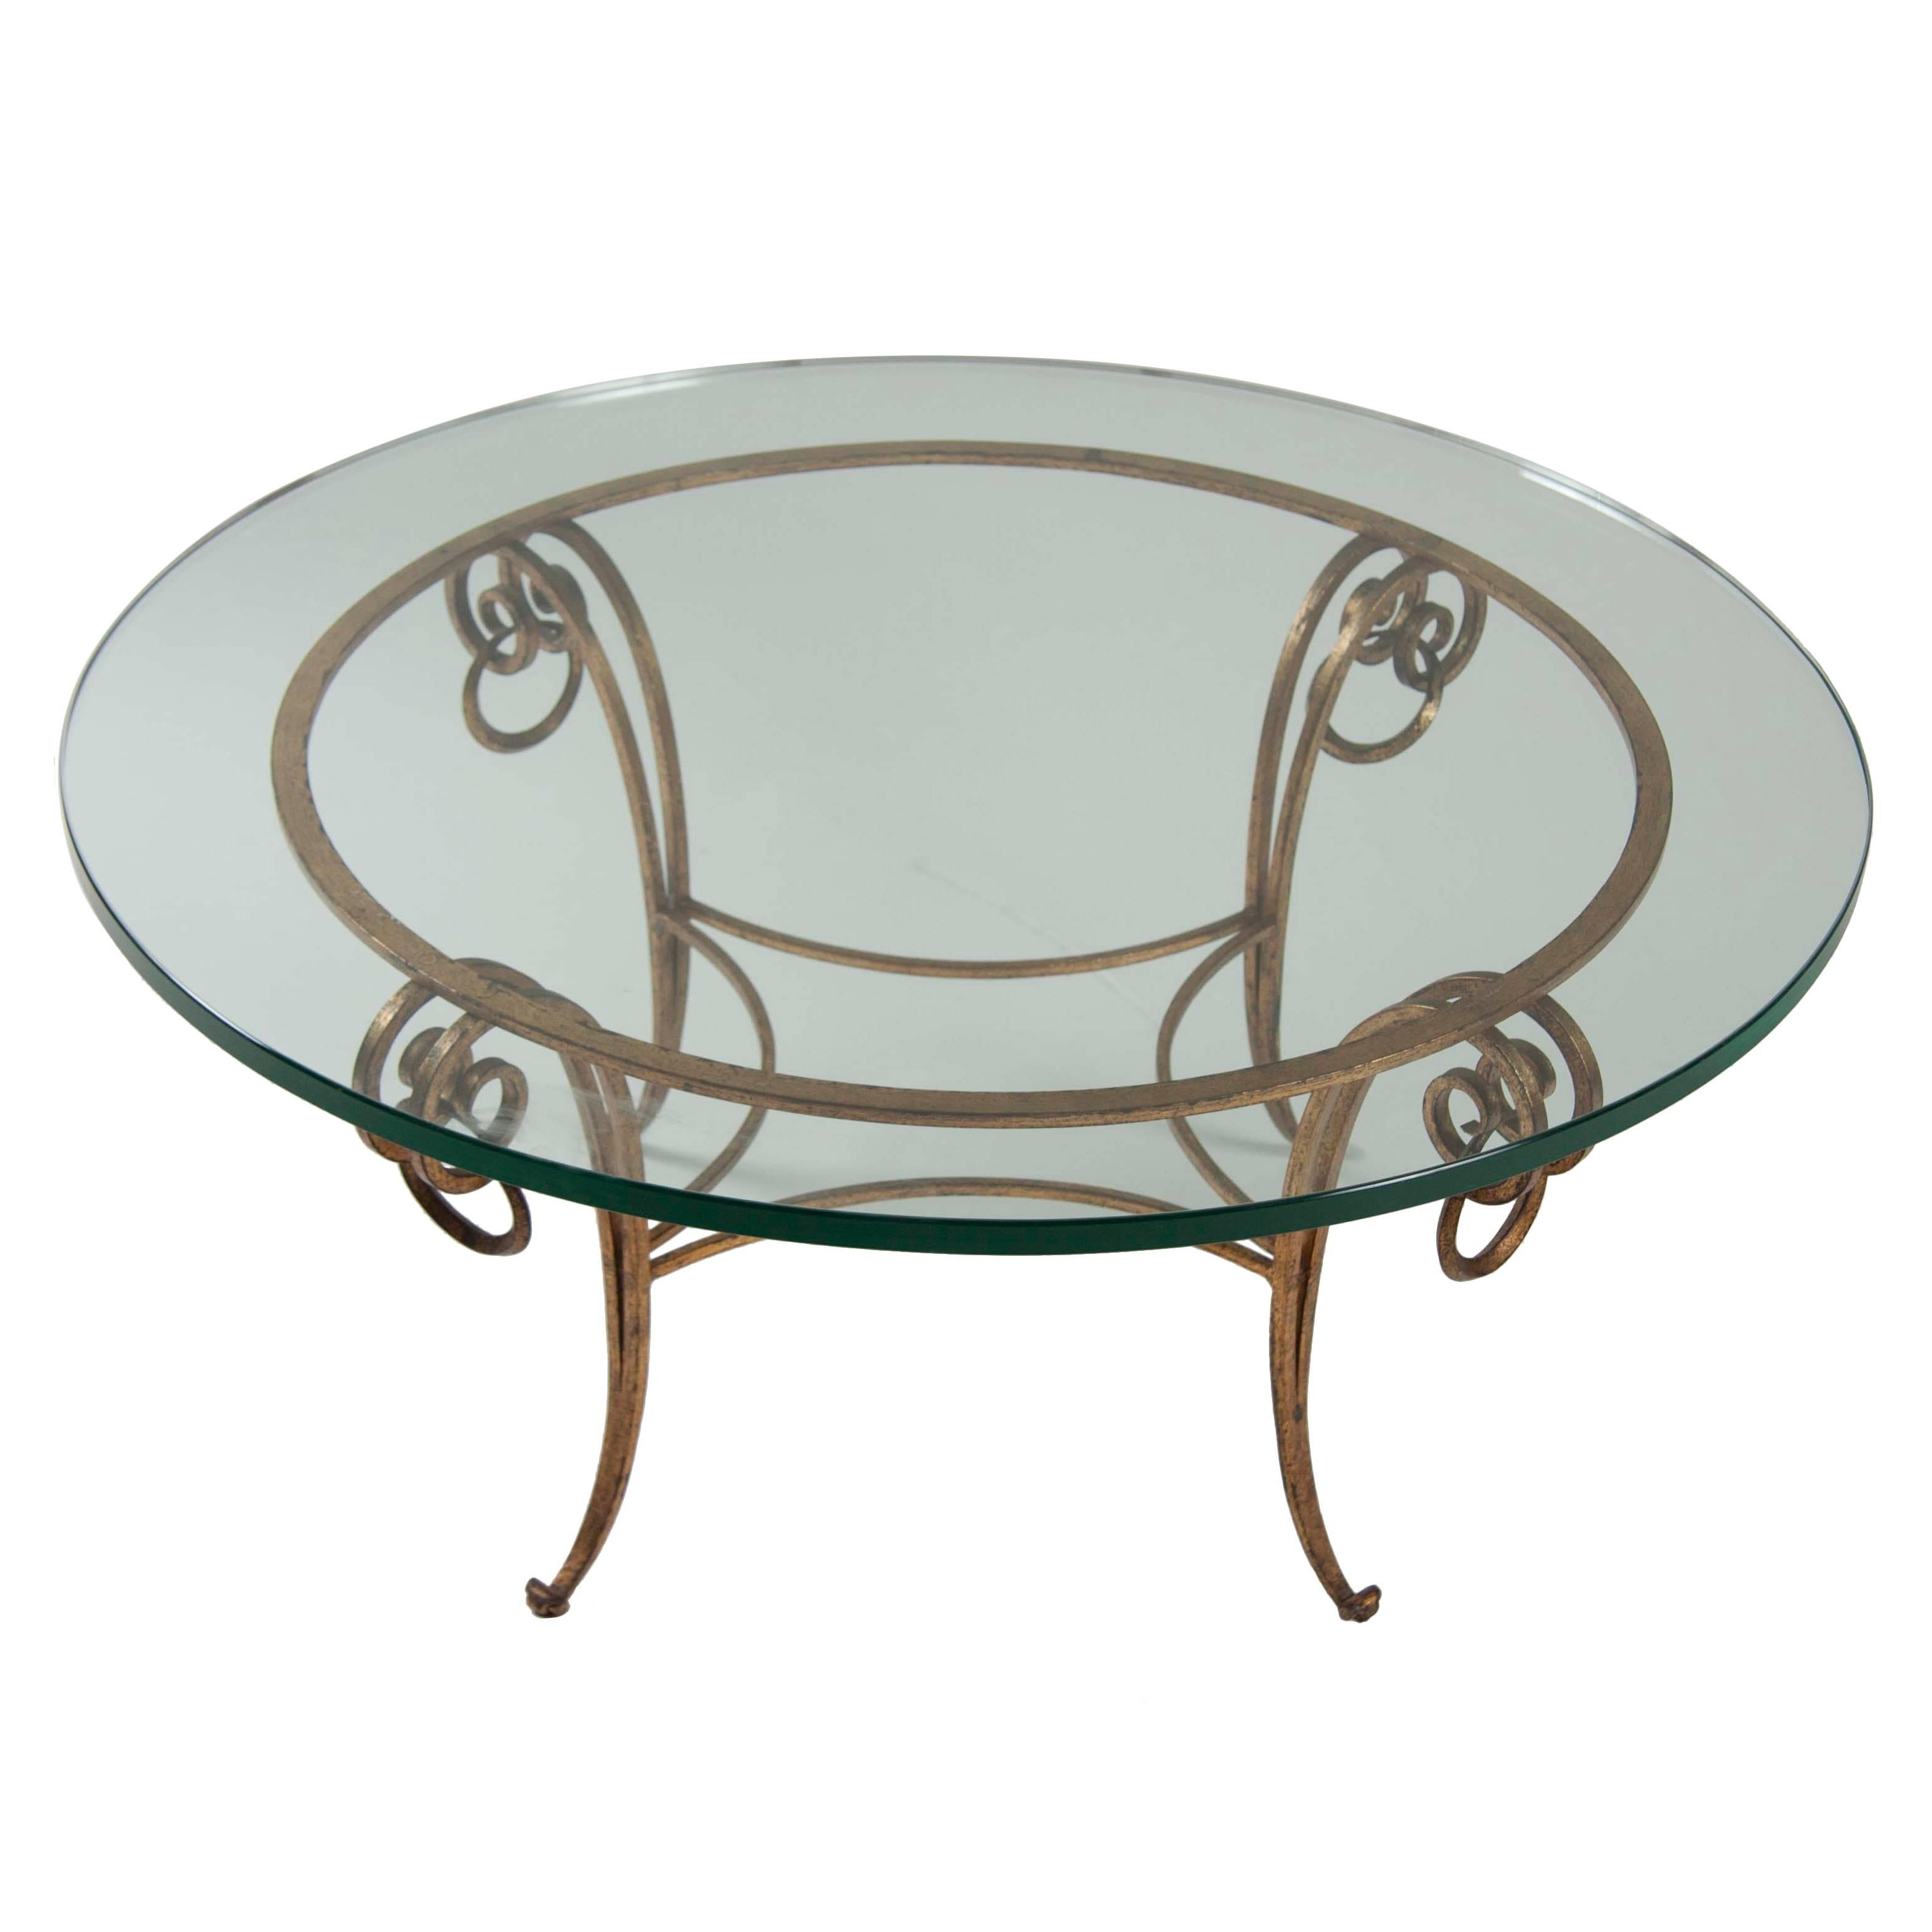 Gilt Iron Coffee Table in the Manner of Rene Drouet